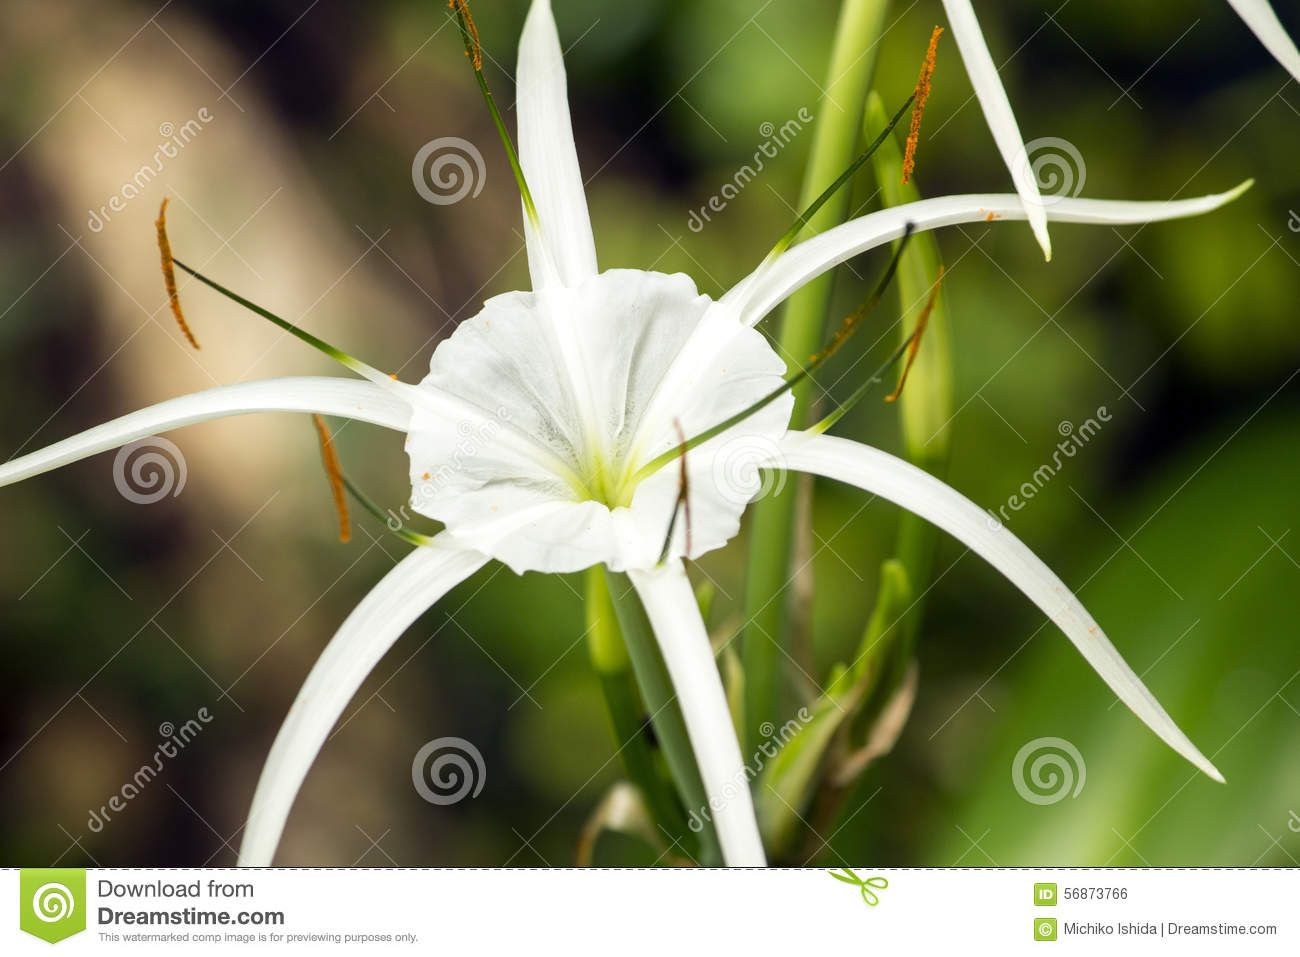 White lily like flower spider lily has long skinny petals 56873766 white lily like flower spider lily has long izmirmasajfo Image collections